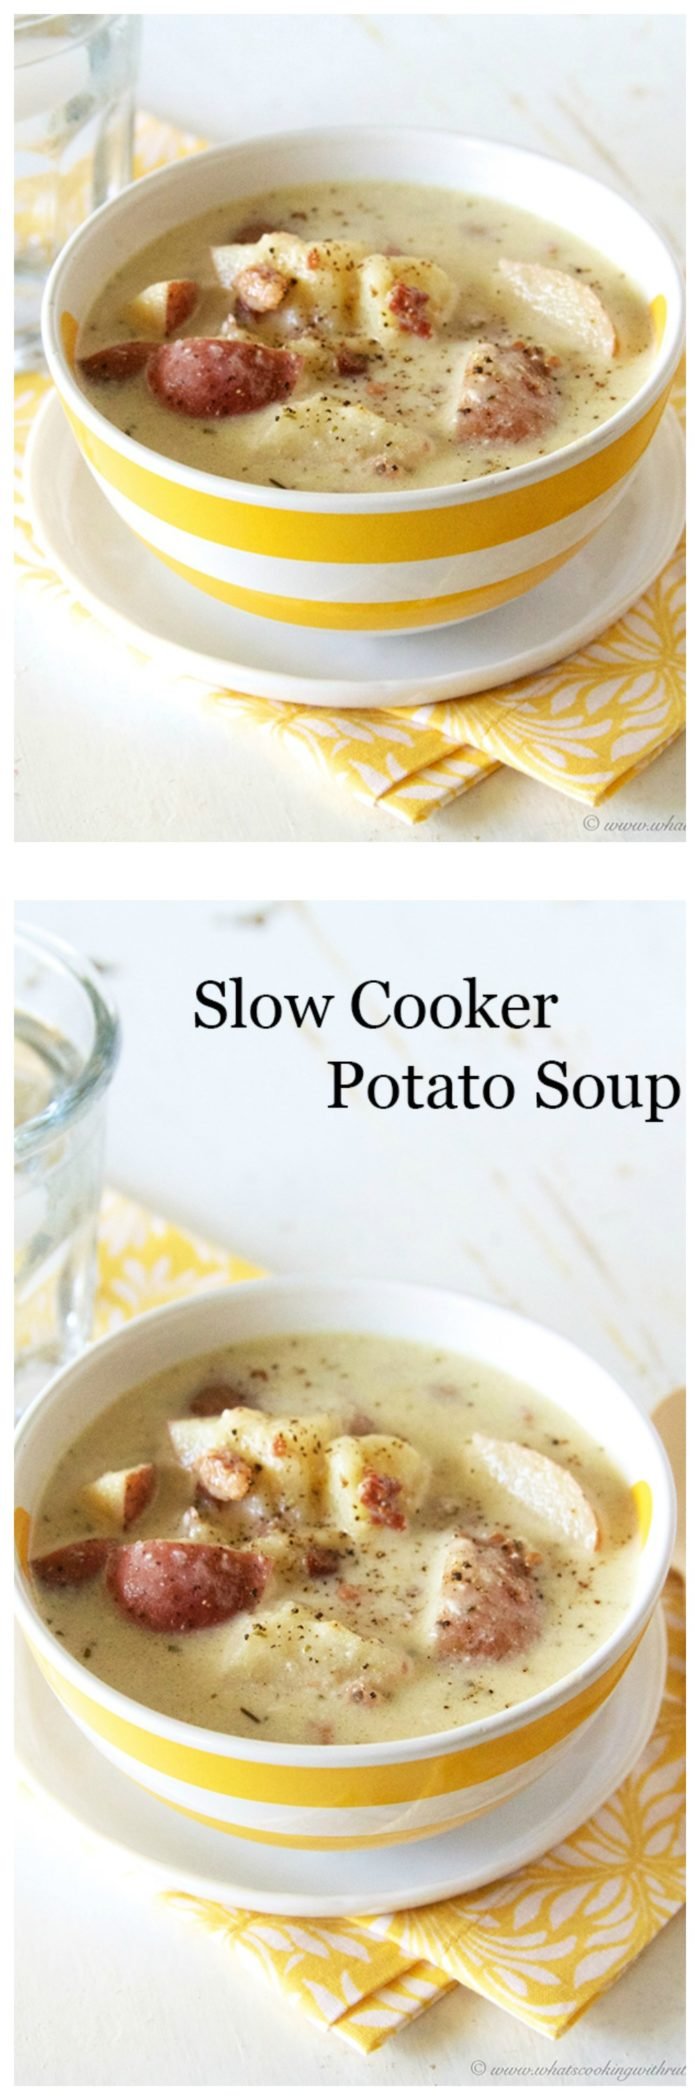 Today's Slow Cooker Potato Soup Recipe is one of our families favorite recipes and for years it's been a favorite with all of you too! by cookingwithruthie.com